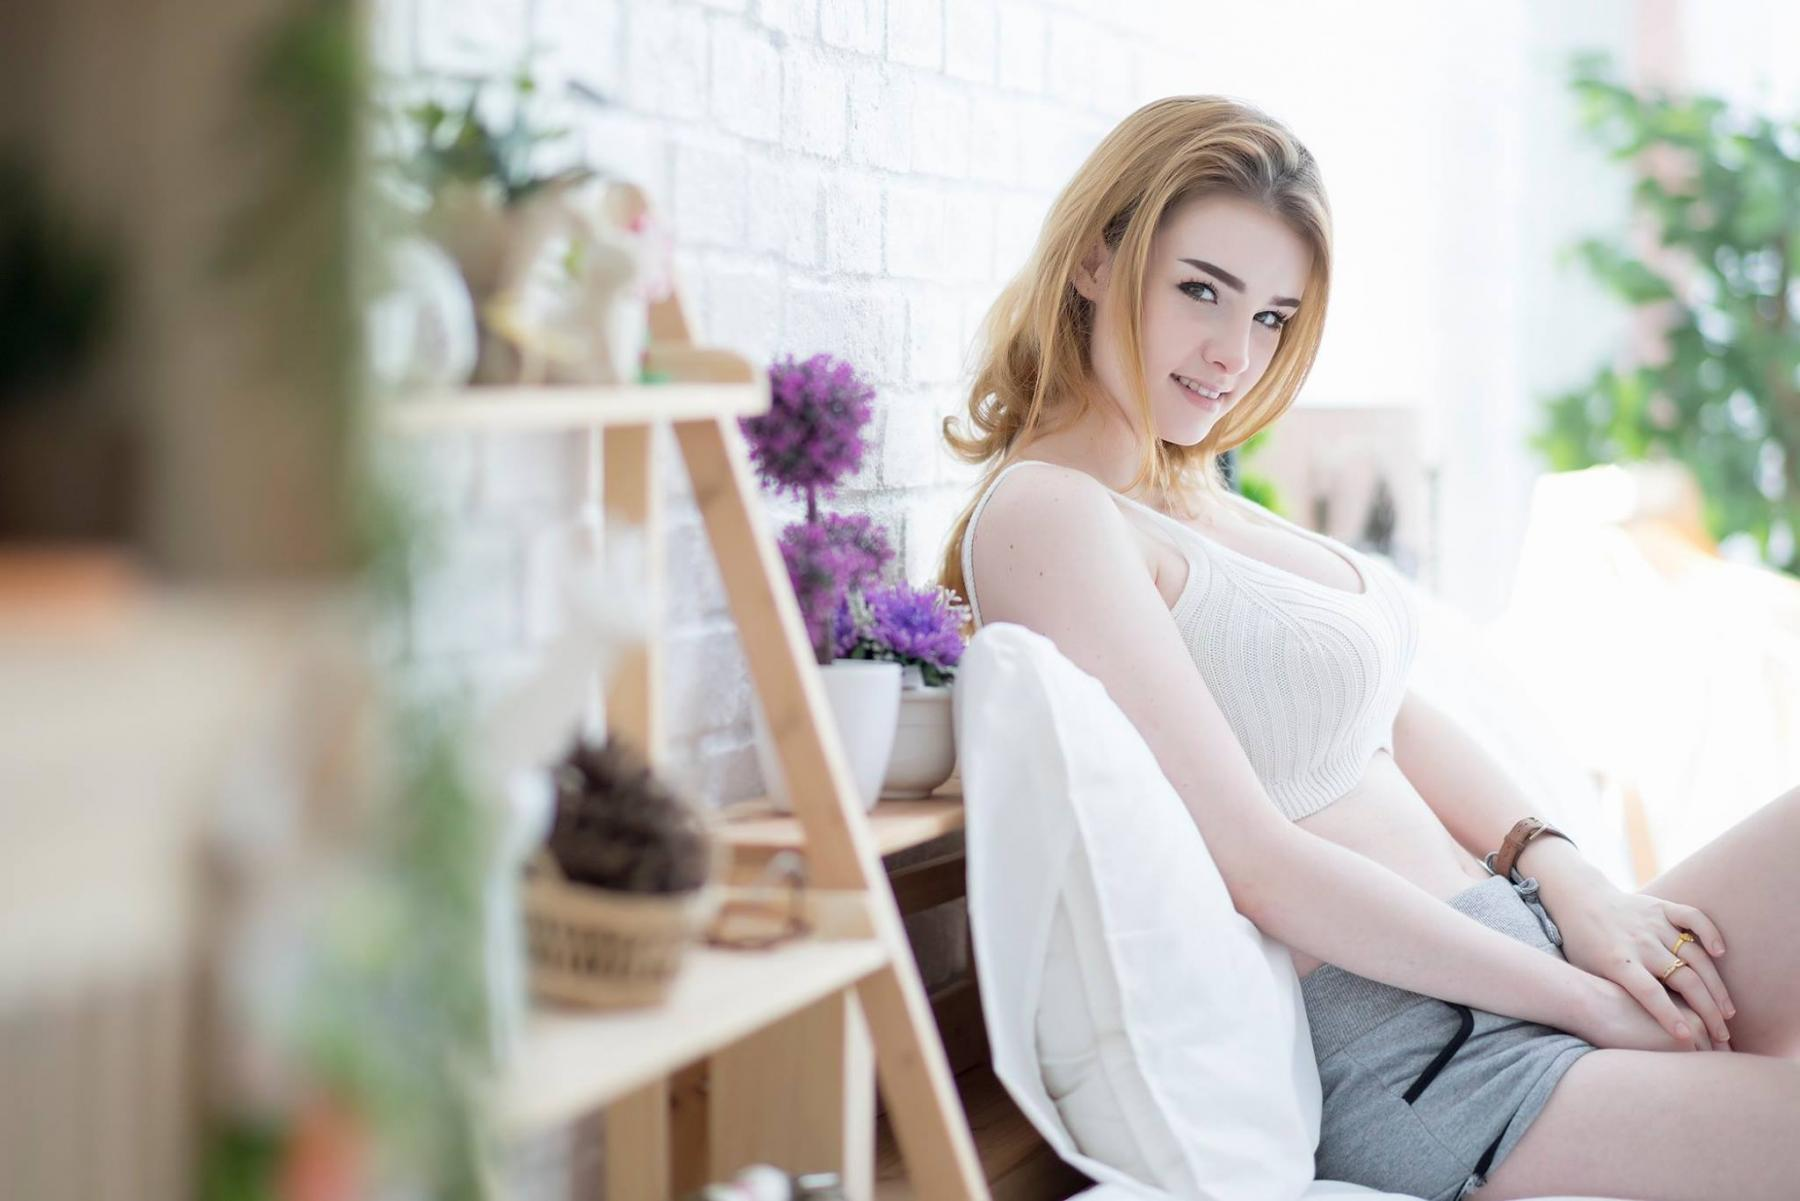 Jessie Vard Thailand Mixed Model Picture and Photo